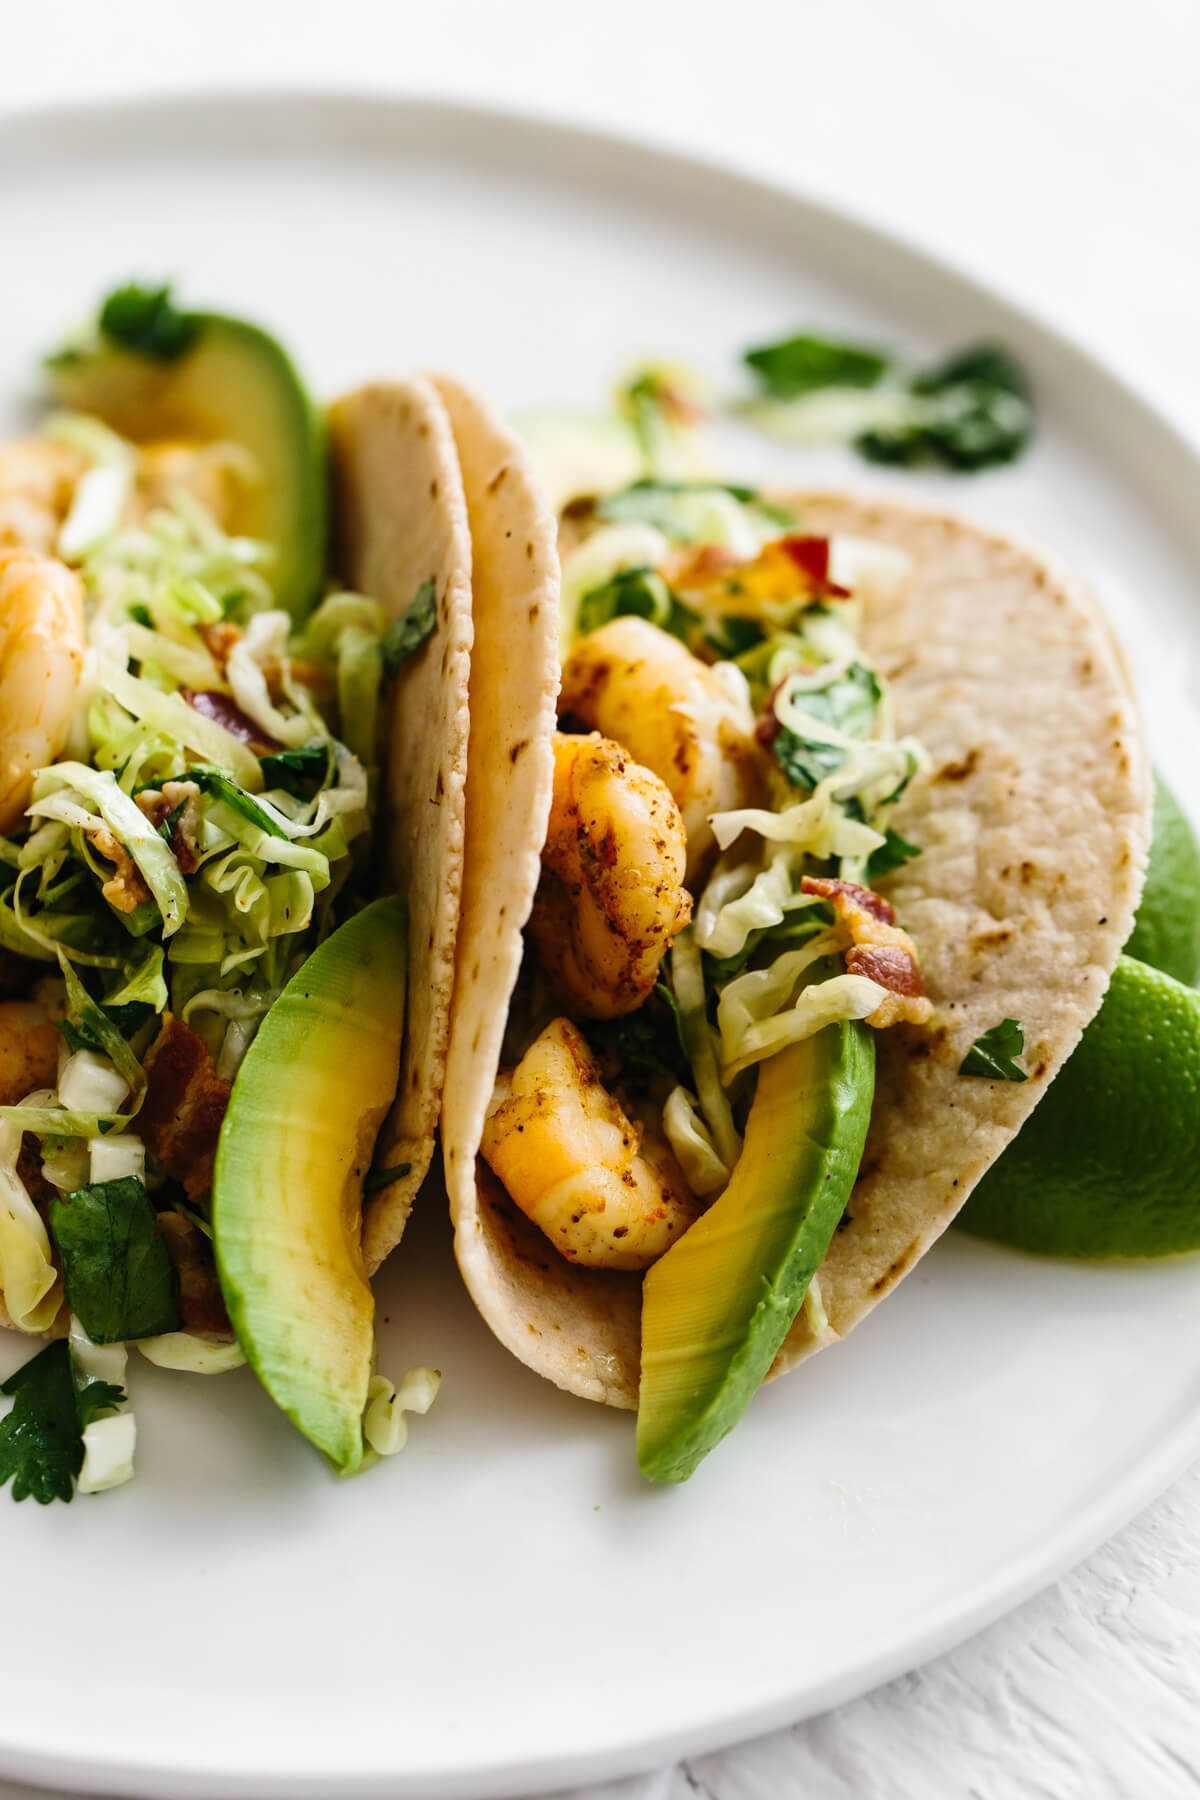 Shrimp taco recipe on a plate.